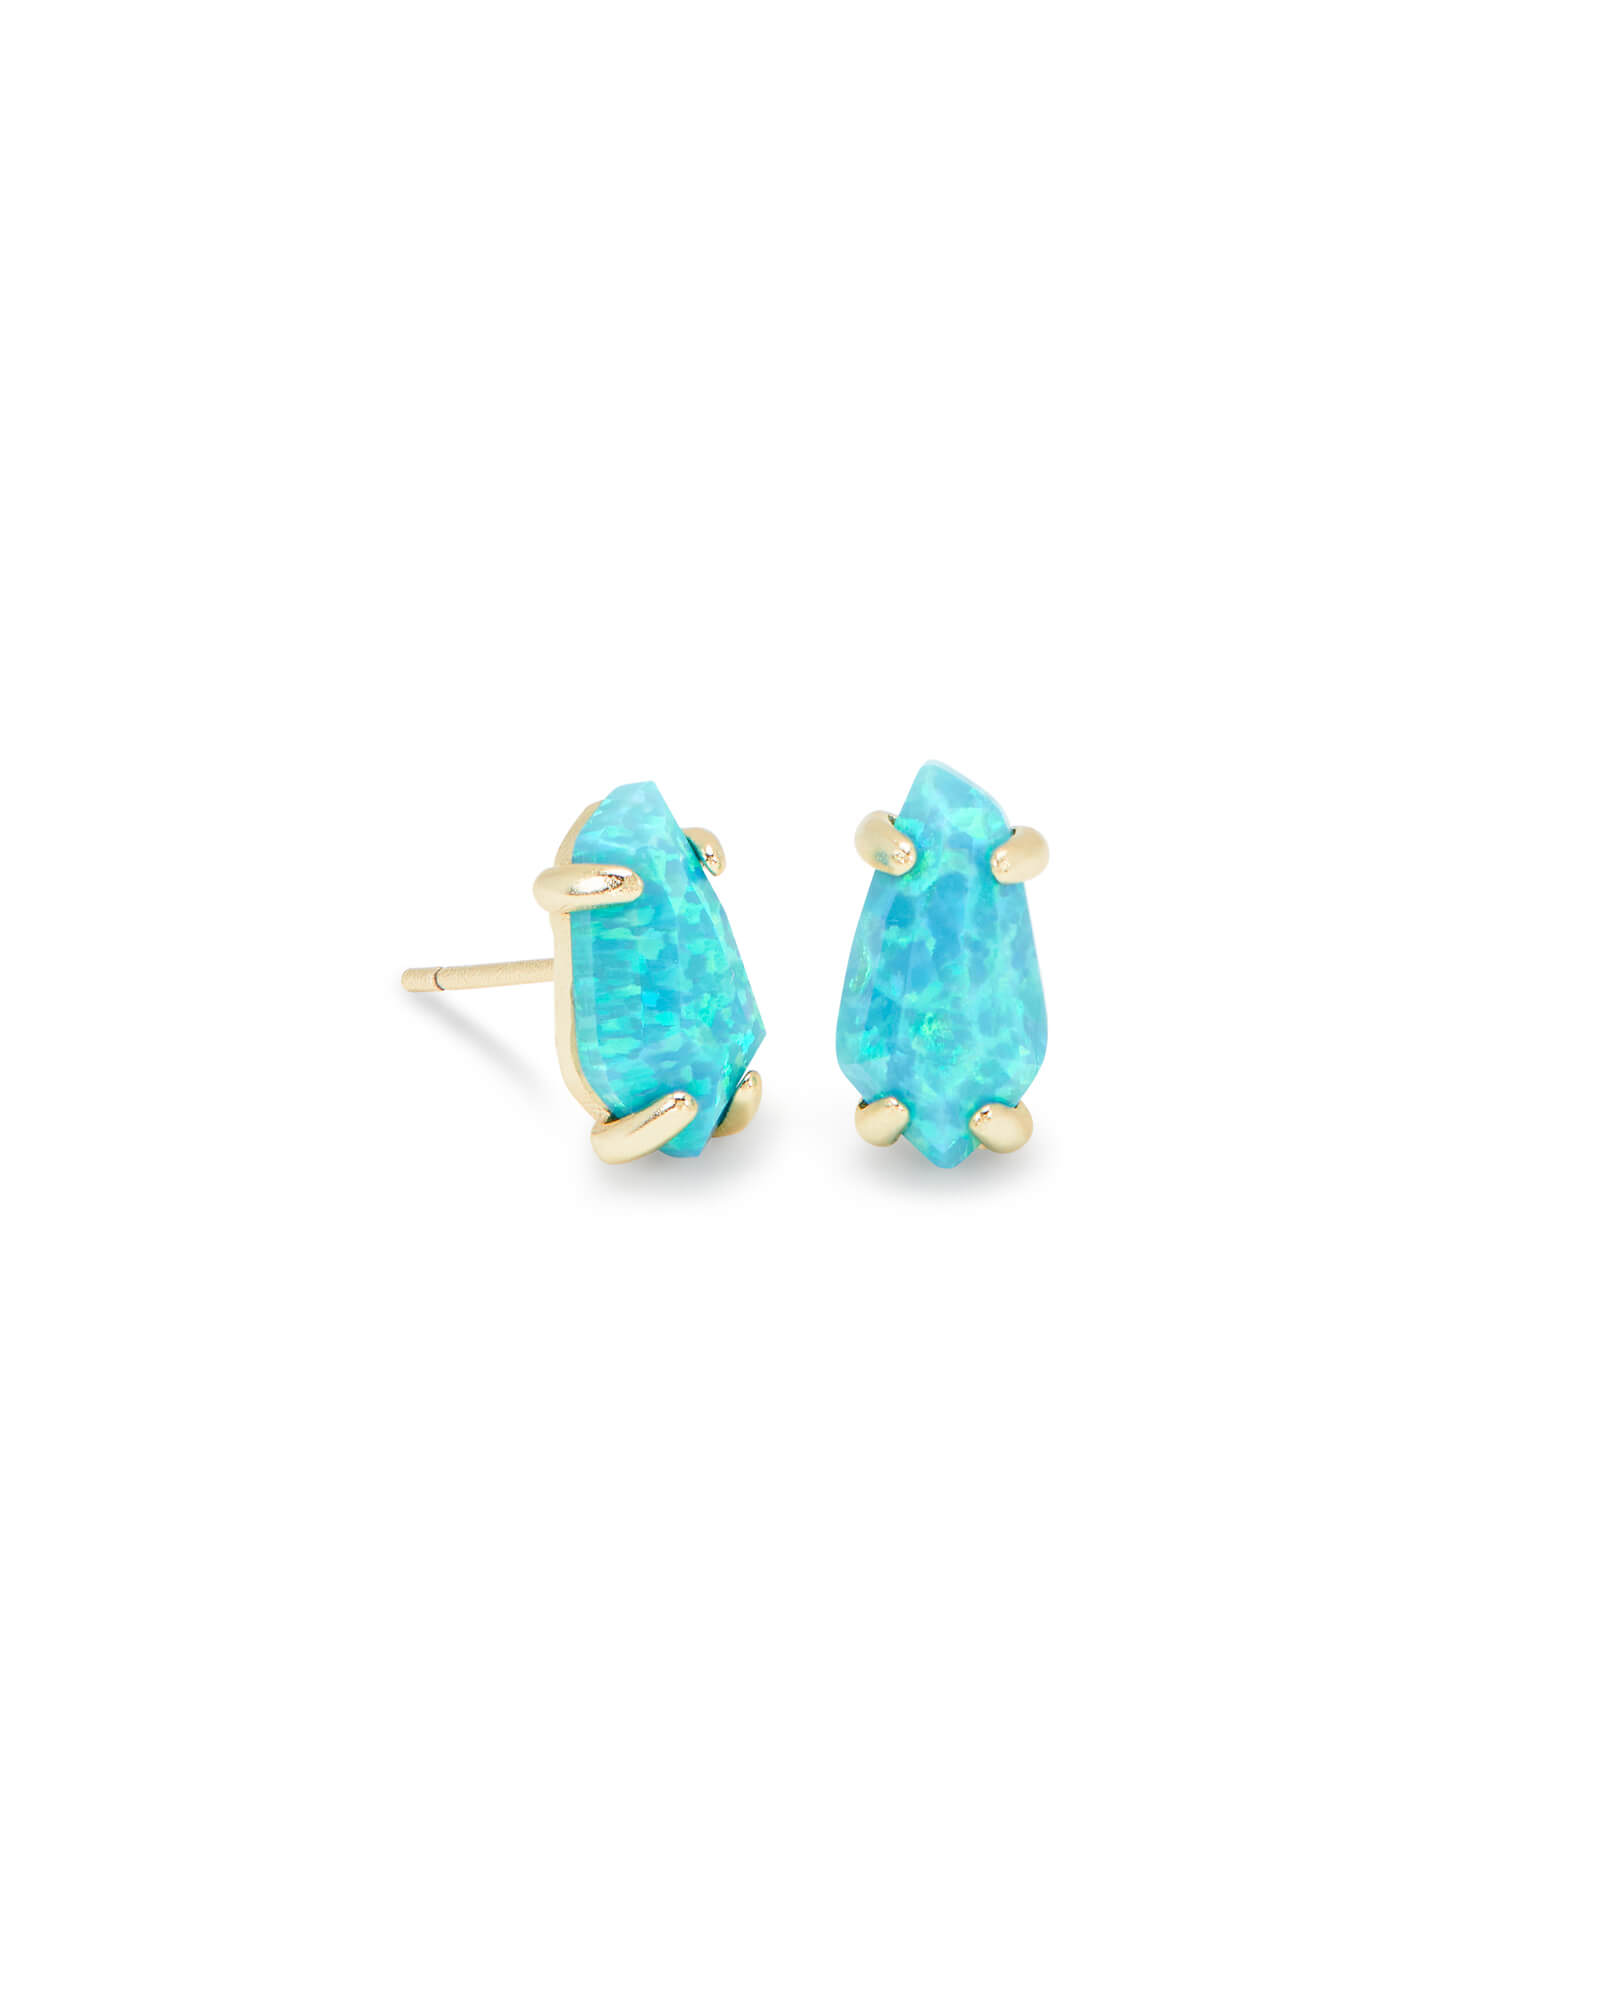 Jillian Gold Stud Earrings in Turquoise Kyocera Opal